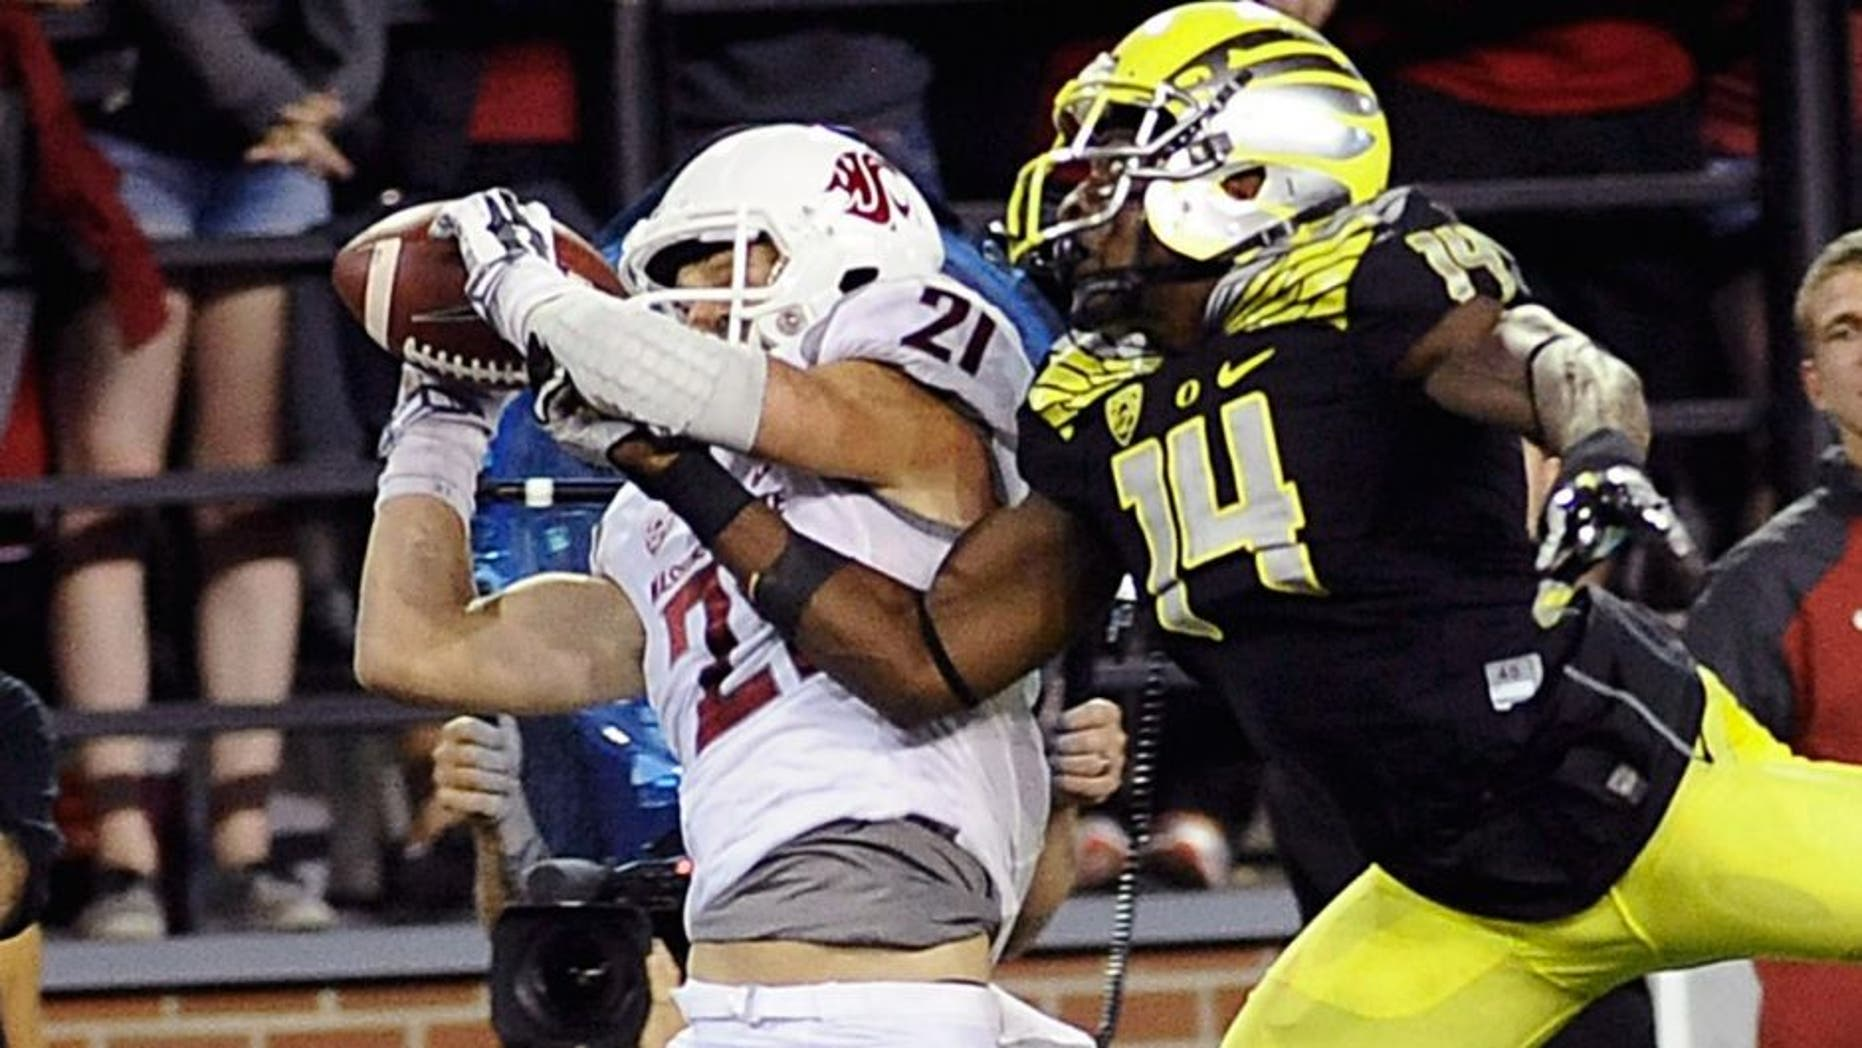 Sep 20, 2014; Pullman, WA, USA; Washington State Cougars wide receiver River Cracraft (21) makes a catch against Oregon Ducks defensive back Ifo Ekpre-Olomu (14) during the second half at Martin Stadium. The Ducks beat Cougars 38-31. Mandatory Credit: James Snook-USA TODAY Sports